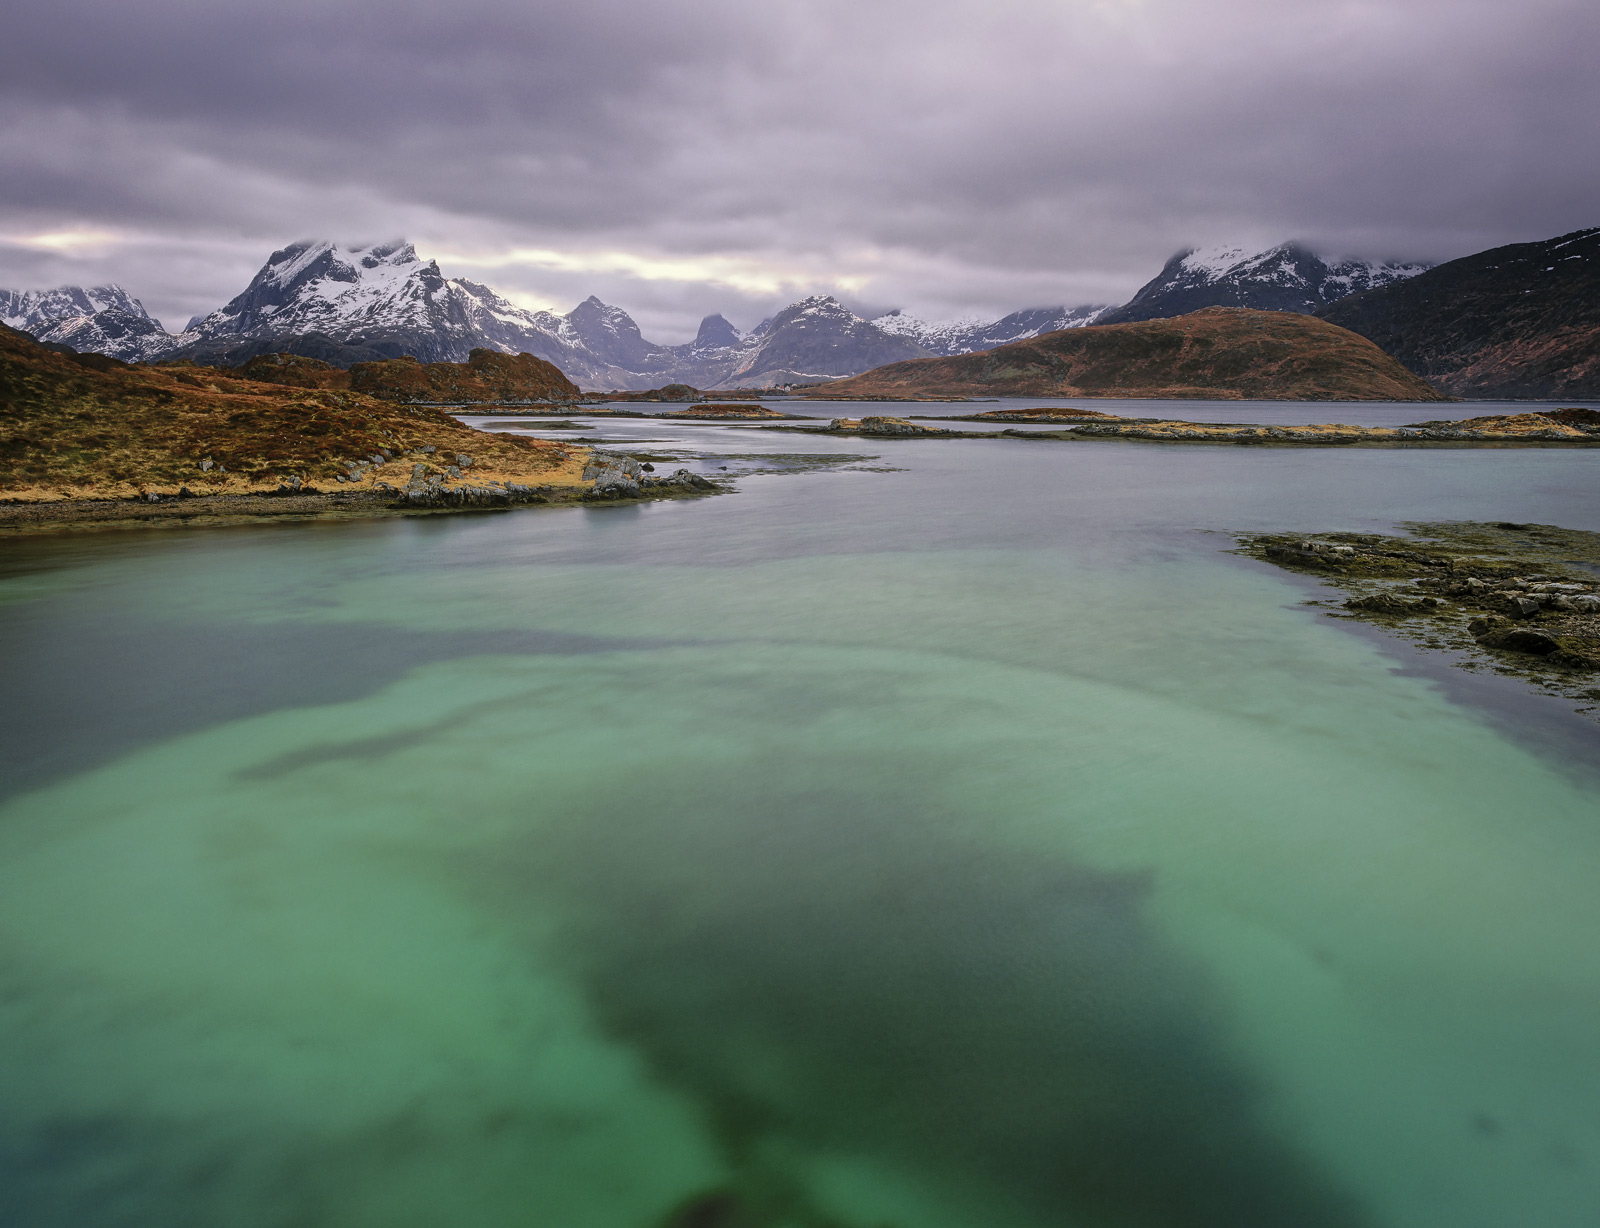 Another of these amazing turquoise blue water shots this time shot with optimal timing to get the strongest colour out of the...